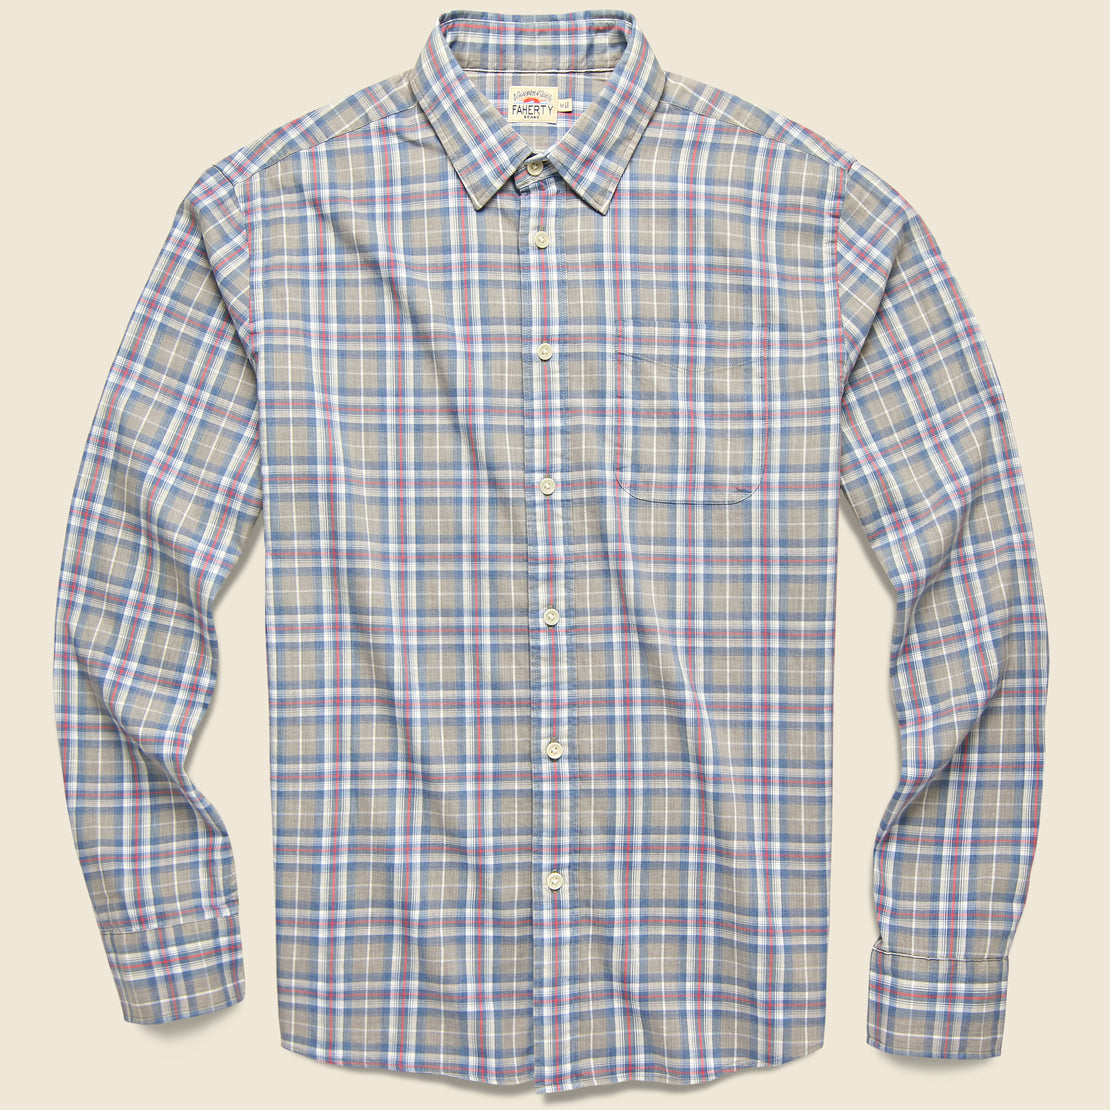 Faherty Movement Melange Shirt - Monterey Plaid